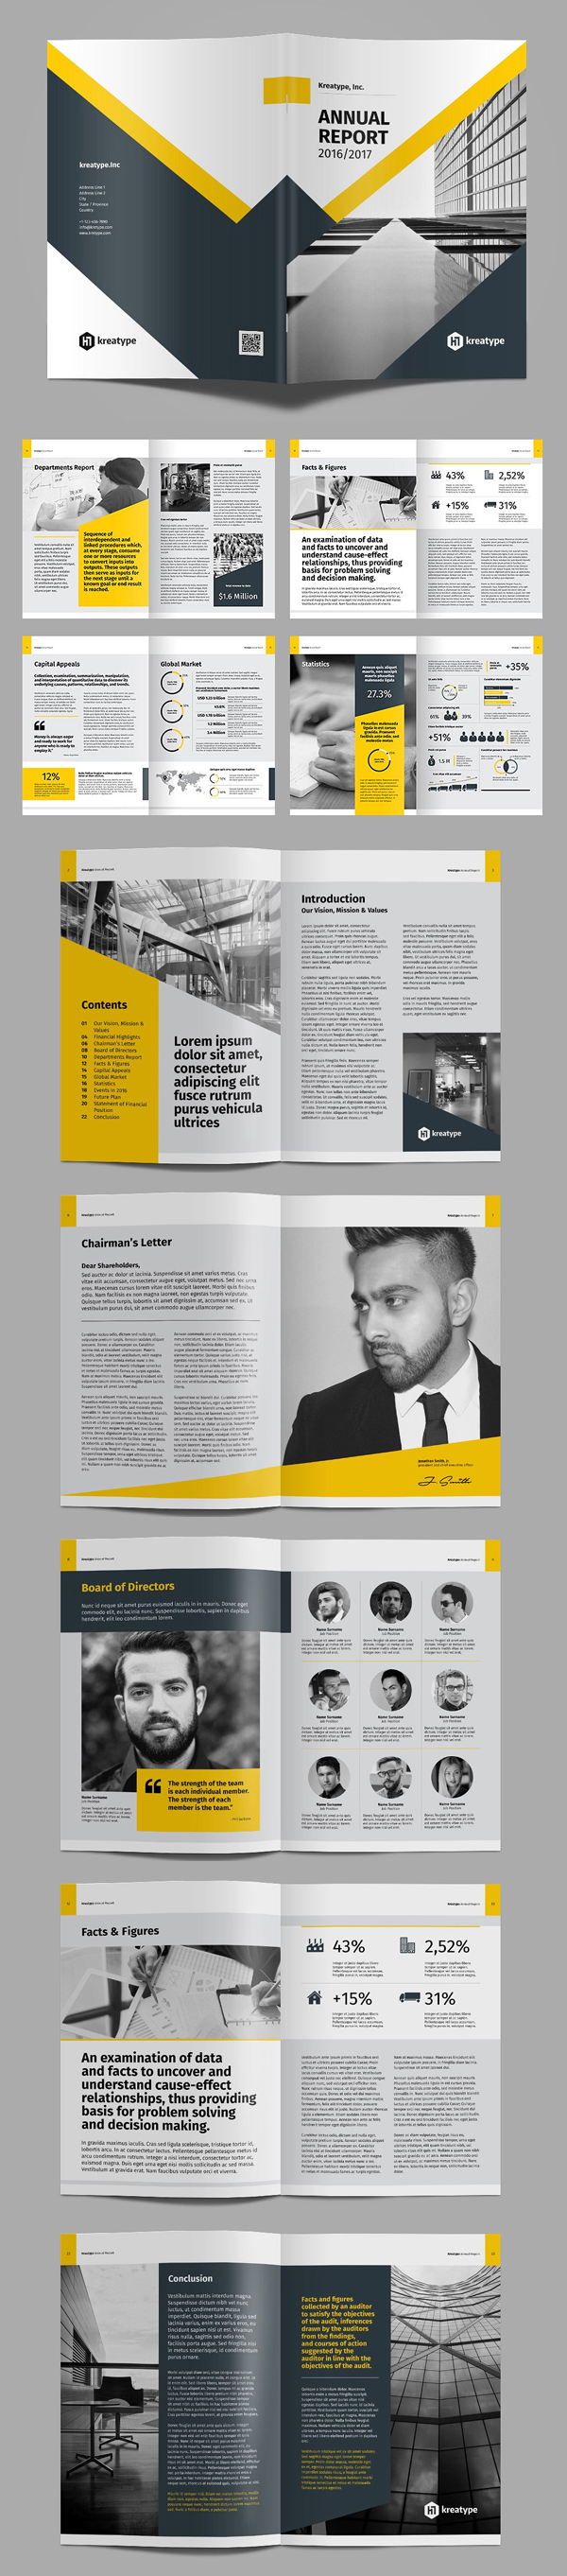 100 Professional Corporate Brochure Templates - 19